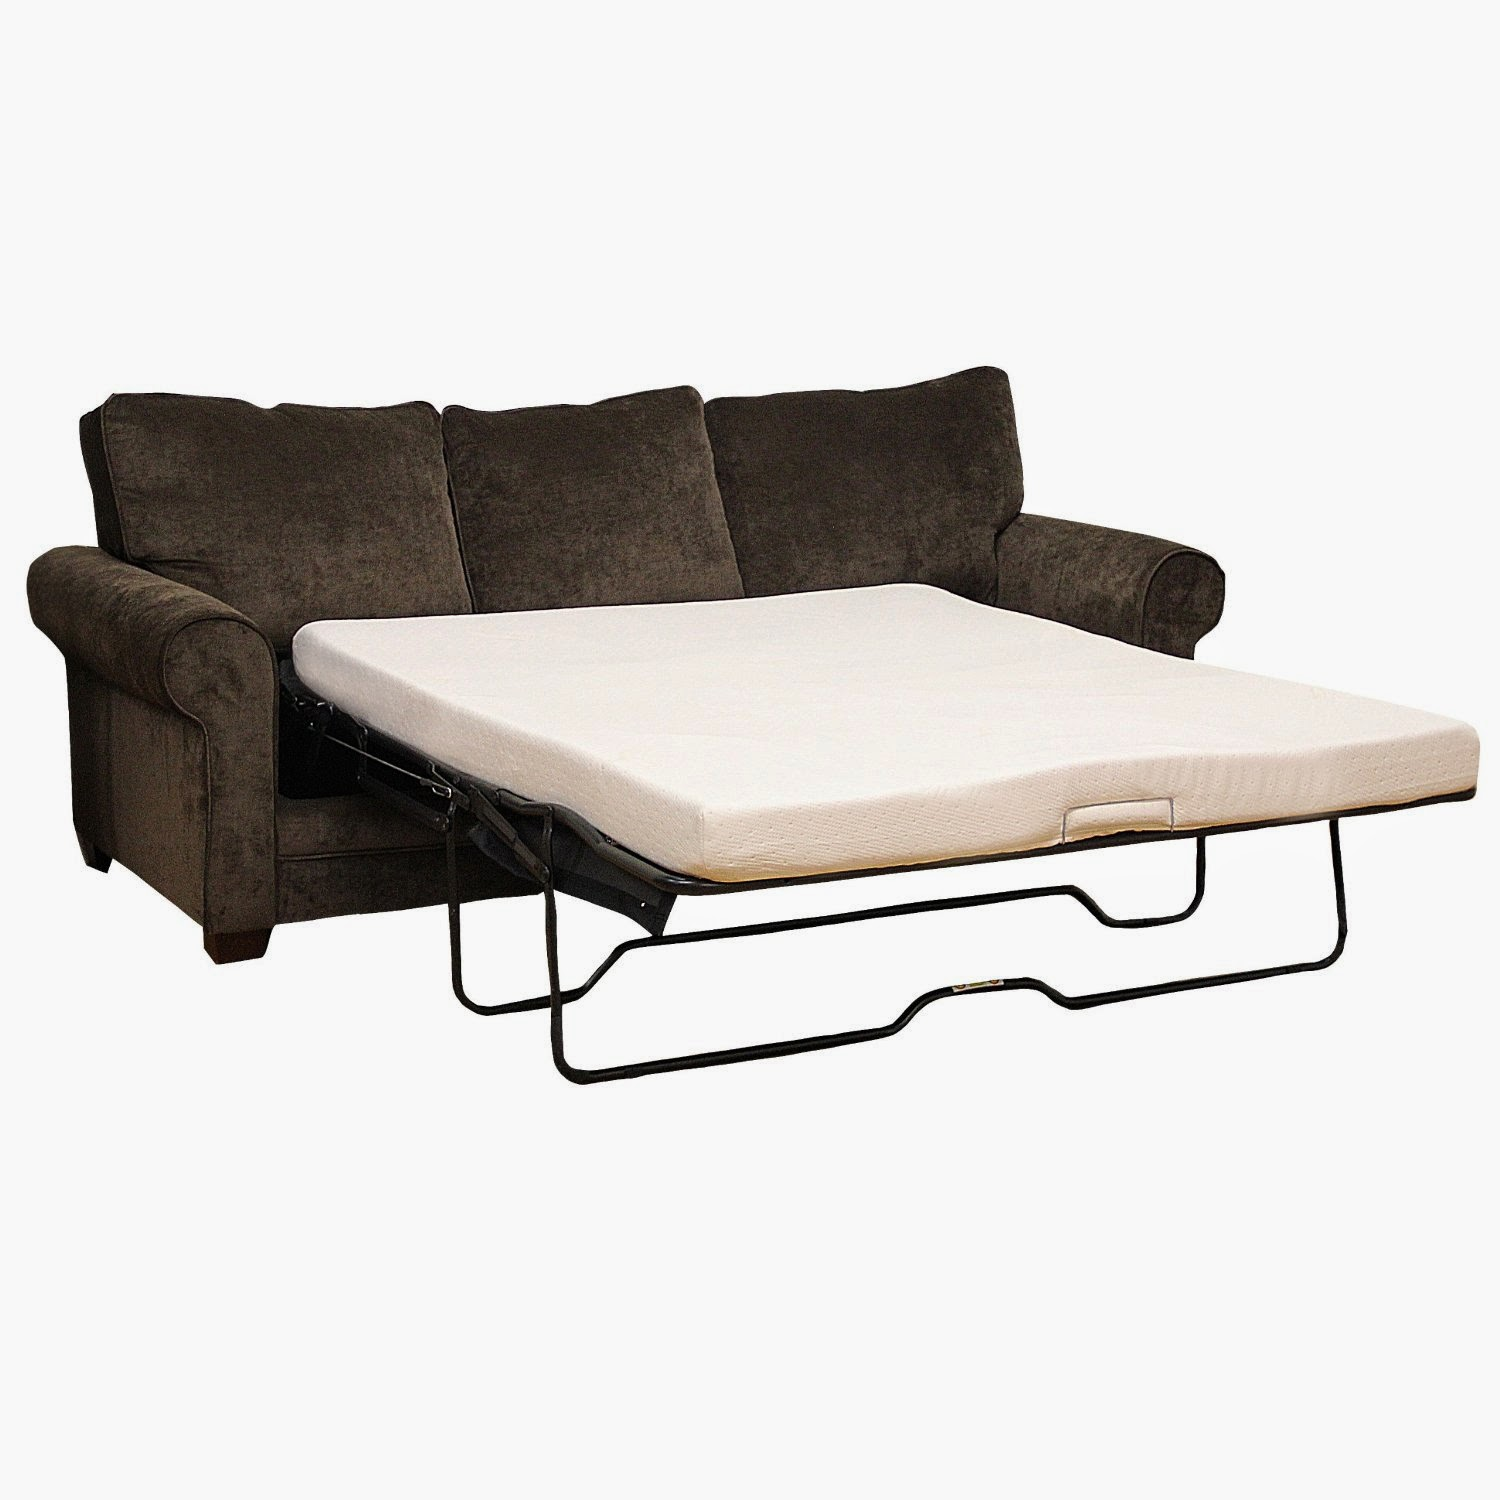 fold out couch: fold out couch bed